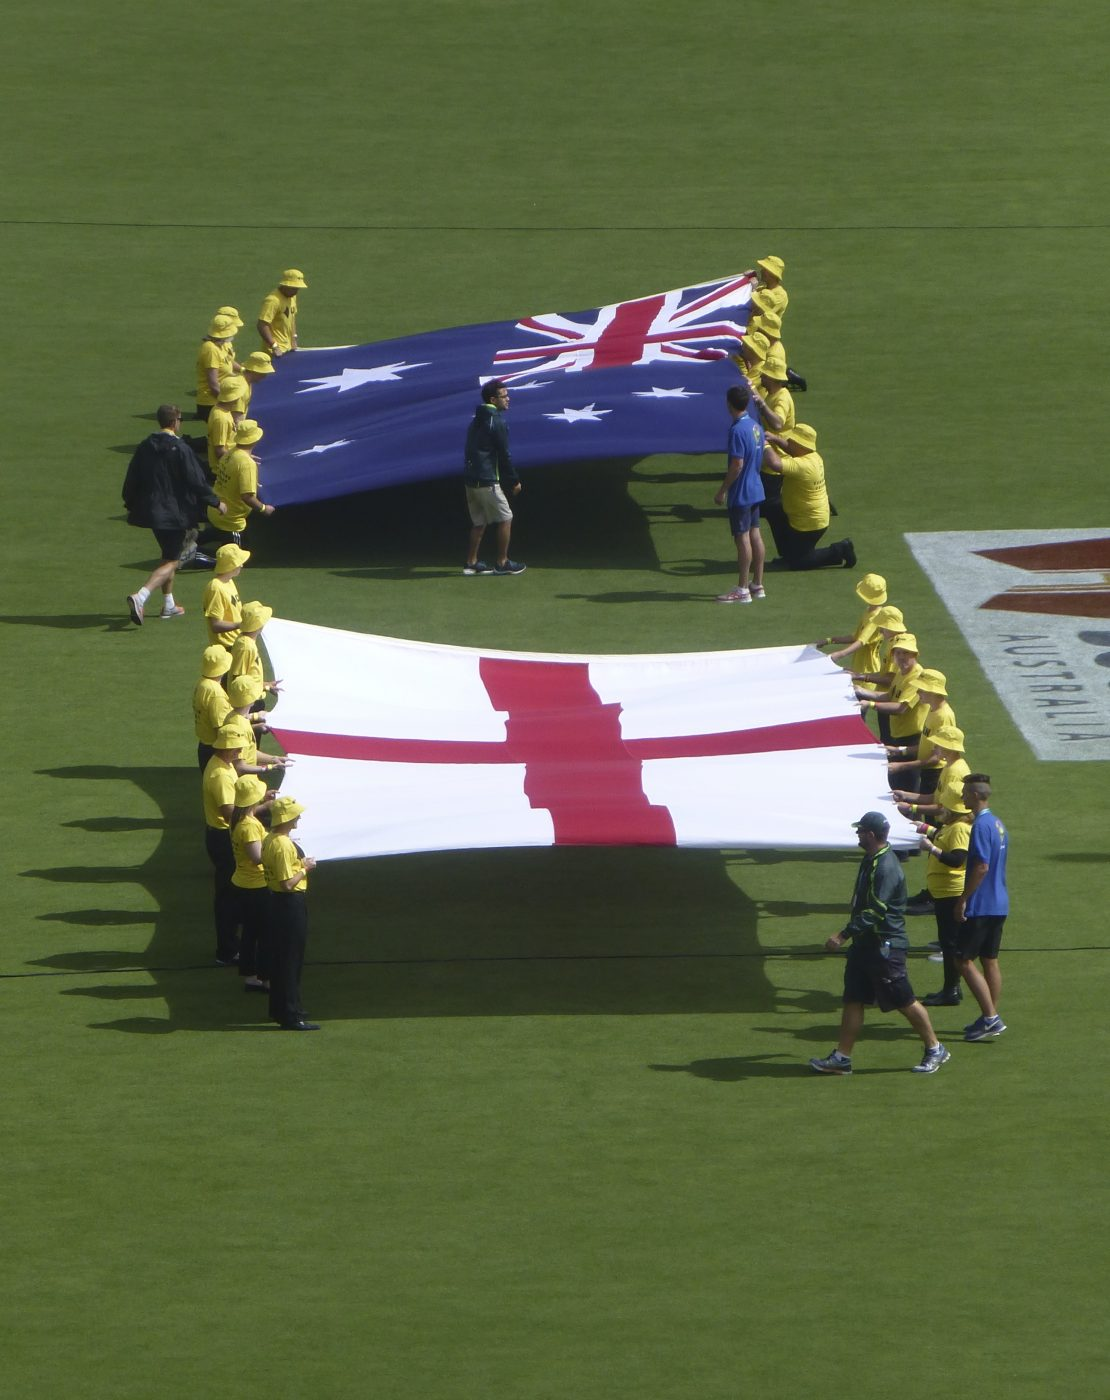 Displaying the flags at the 2nd test